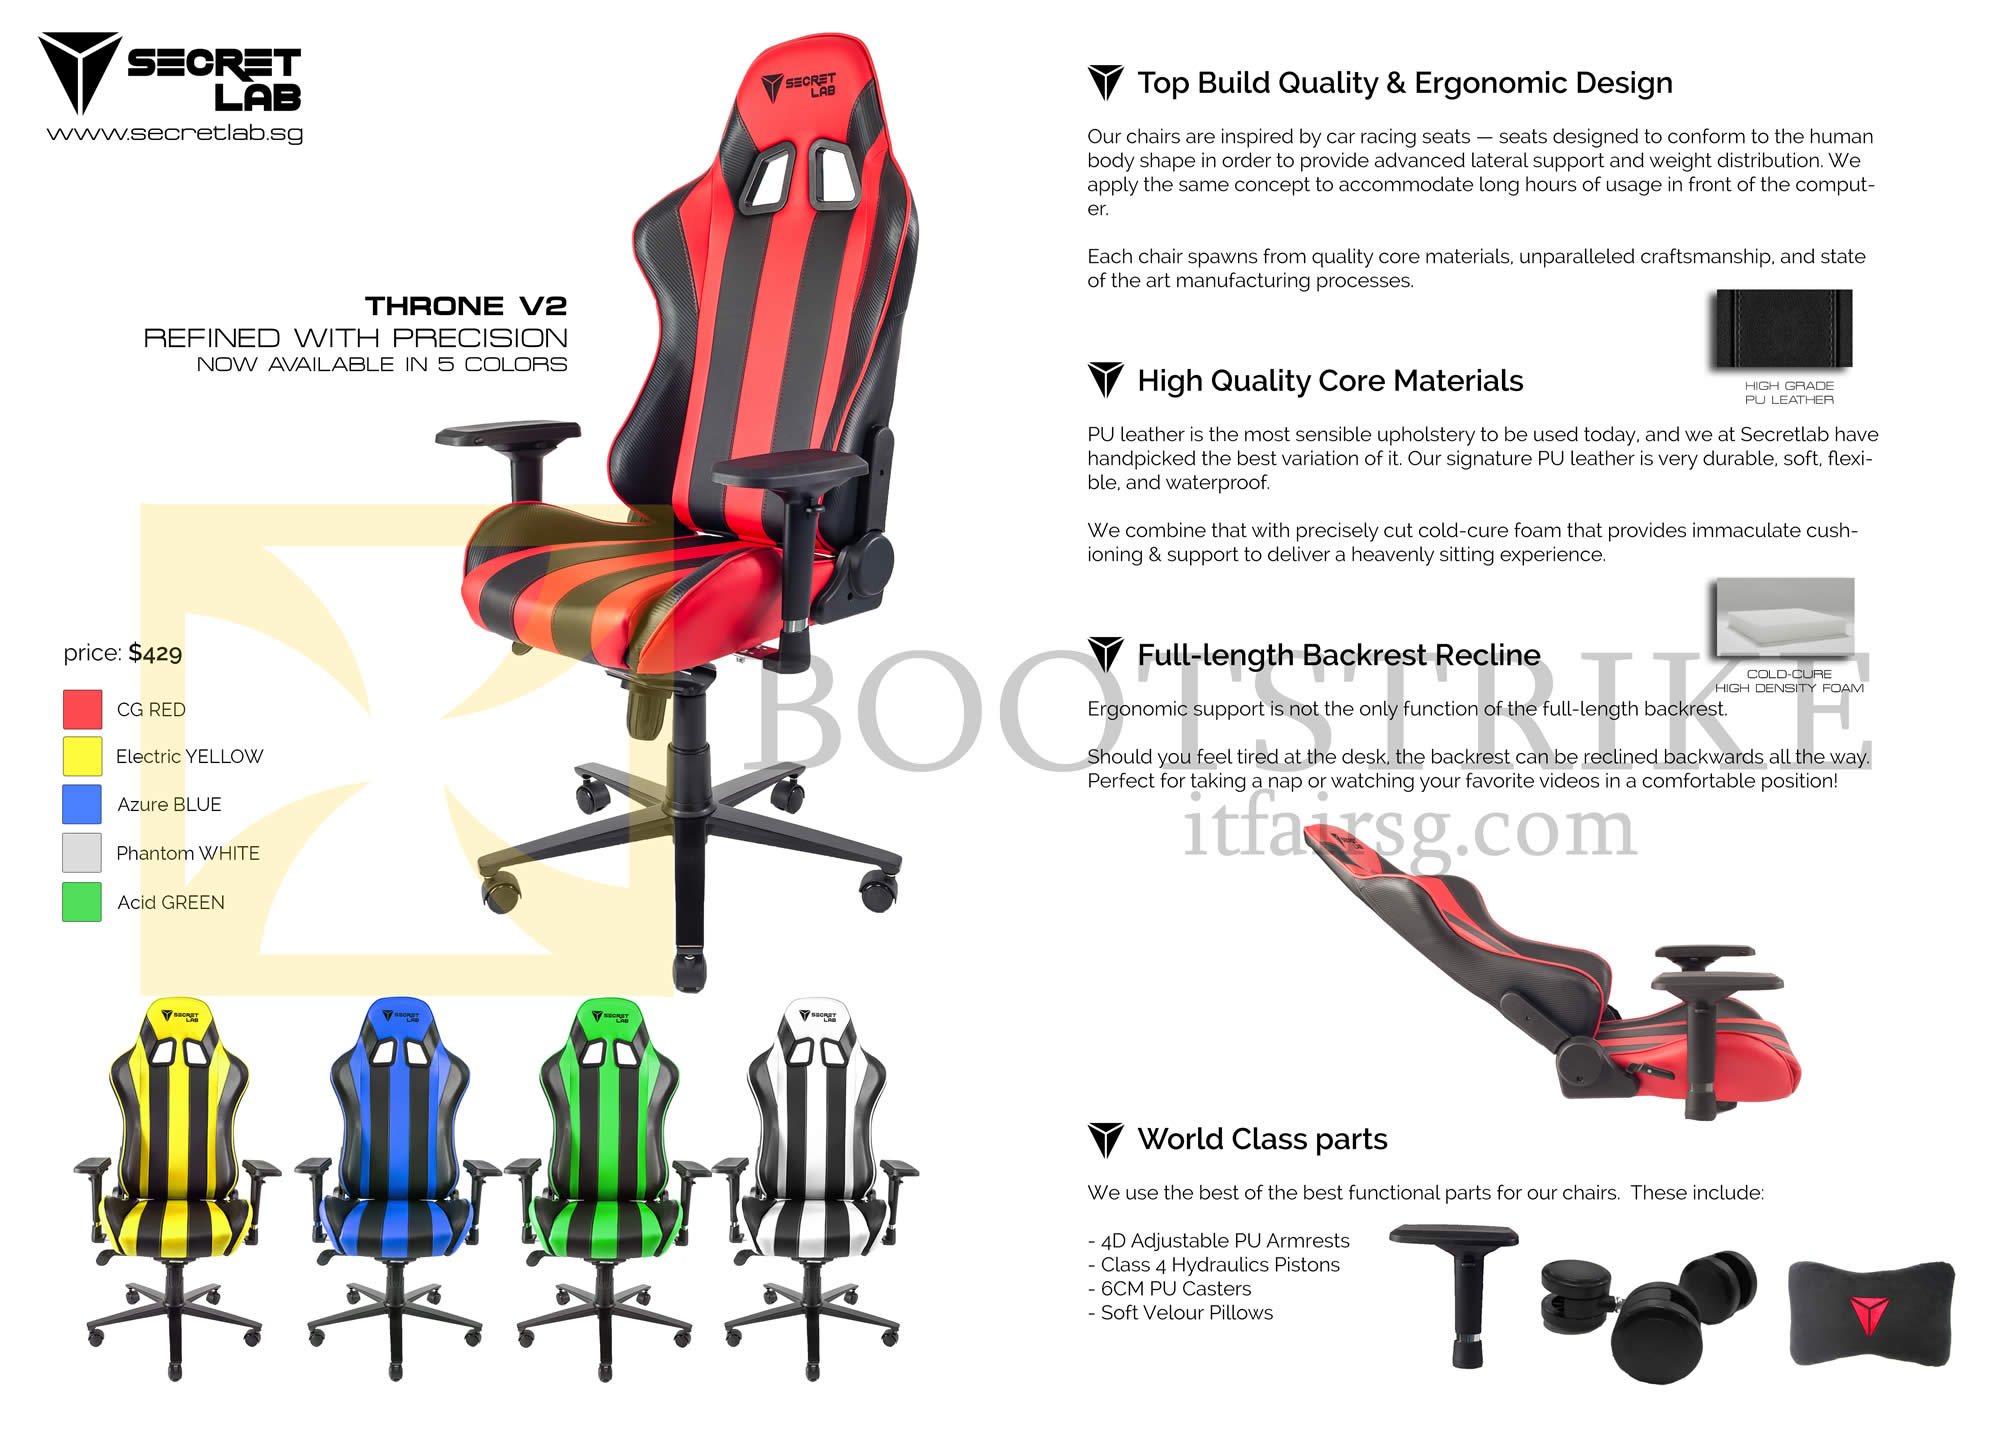 SITEX 2015 price list image brochure of Secret Lab Chair Throne V2 Features